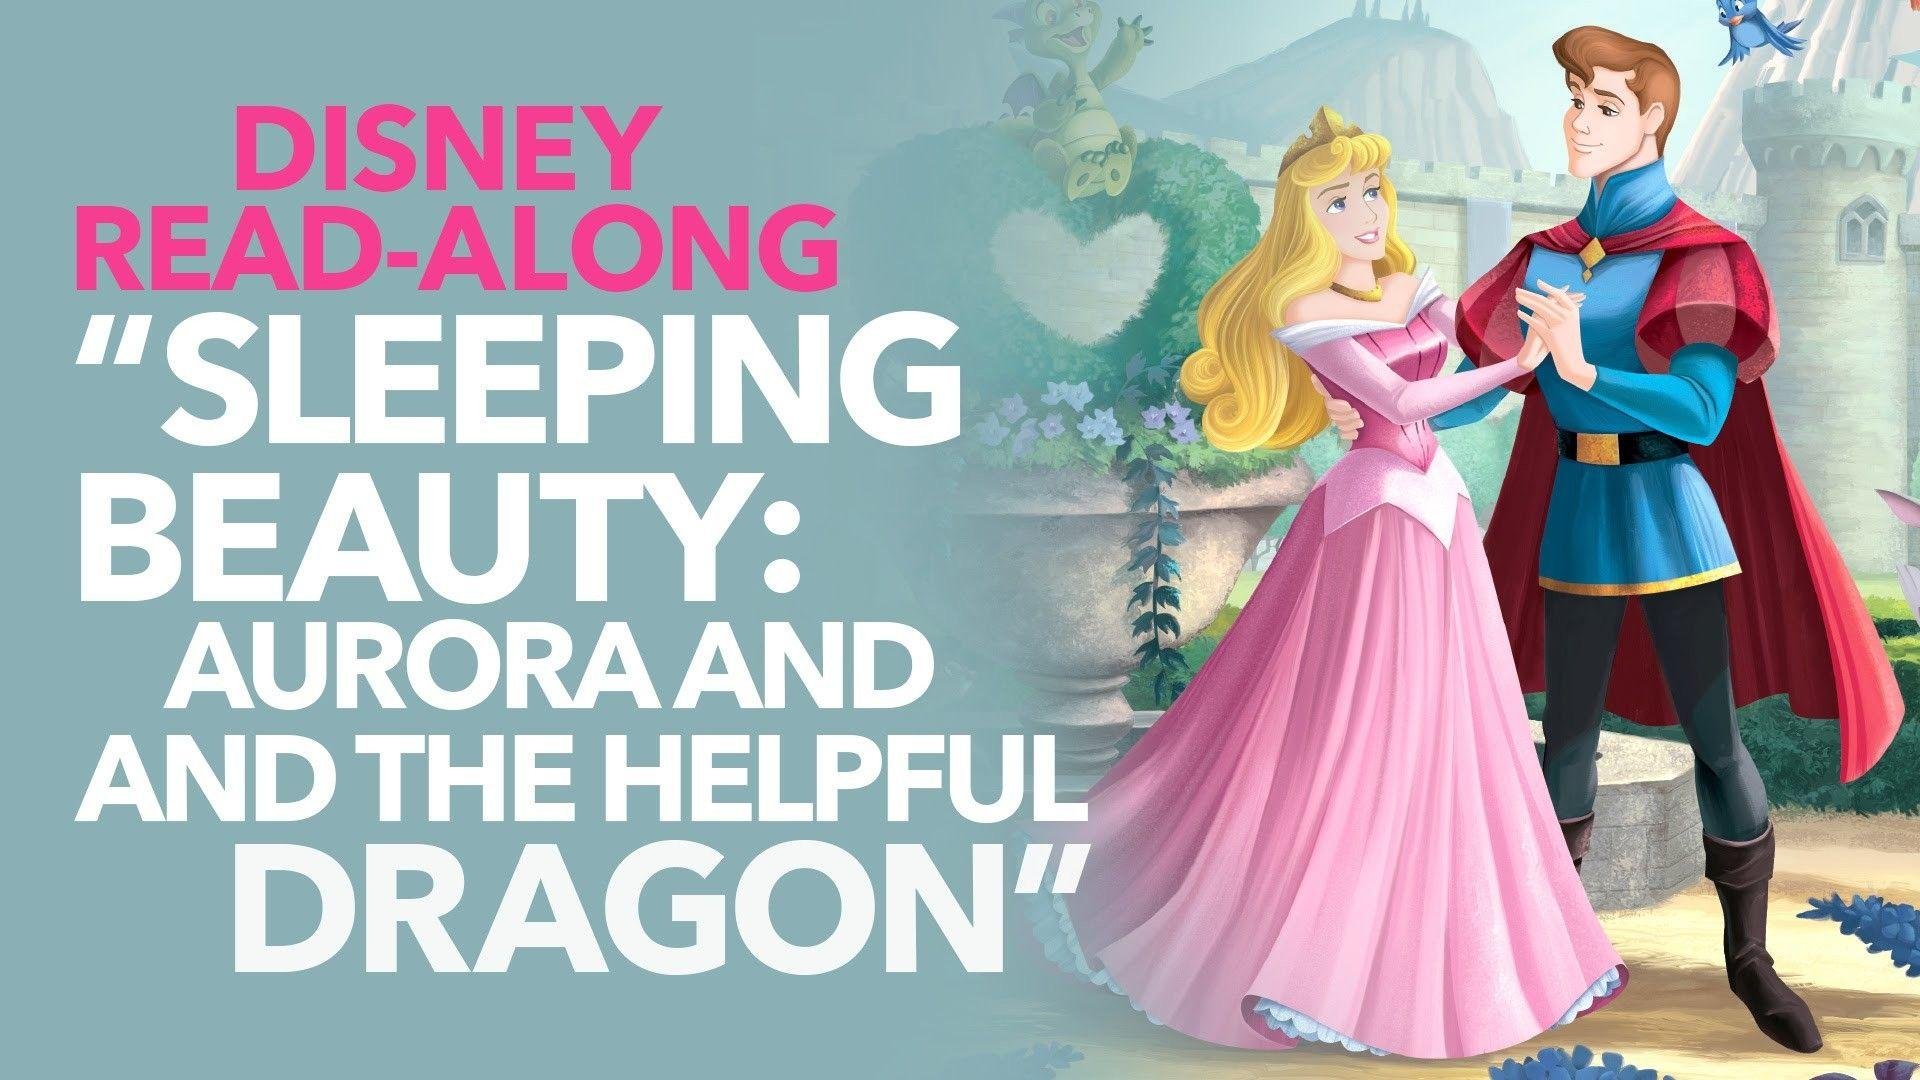 Sleeping Beauty Wallpaper Disney Princess 67 Images